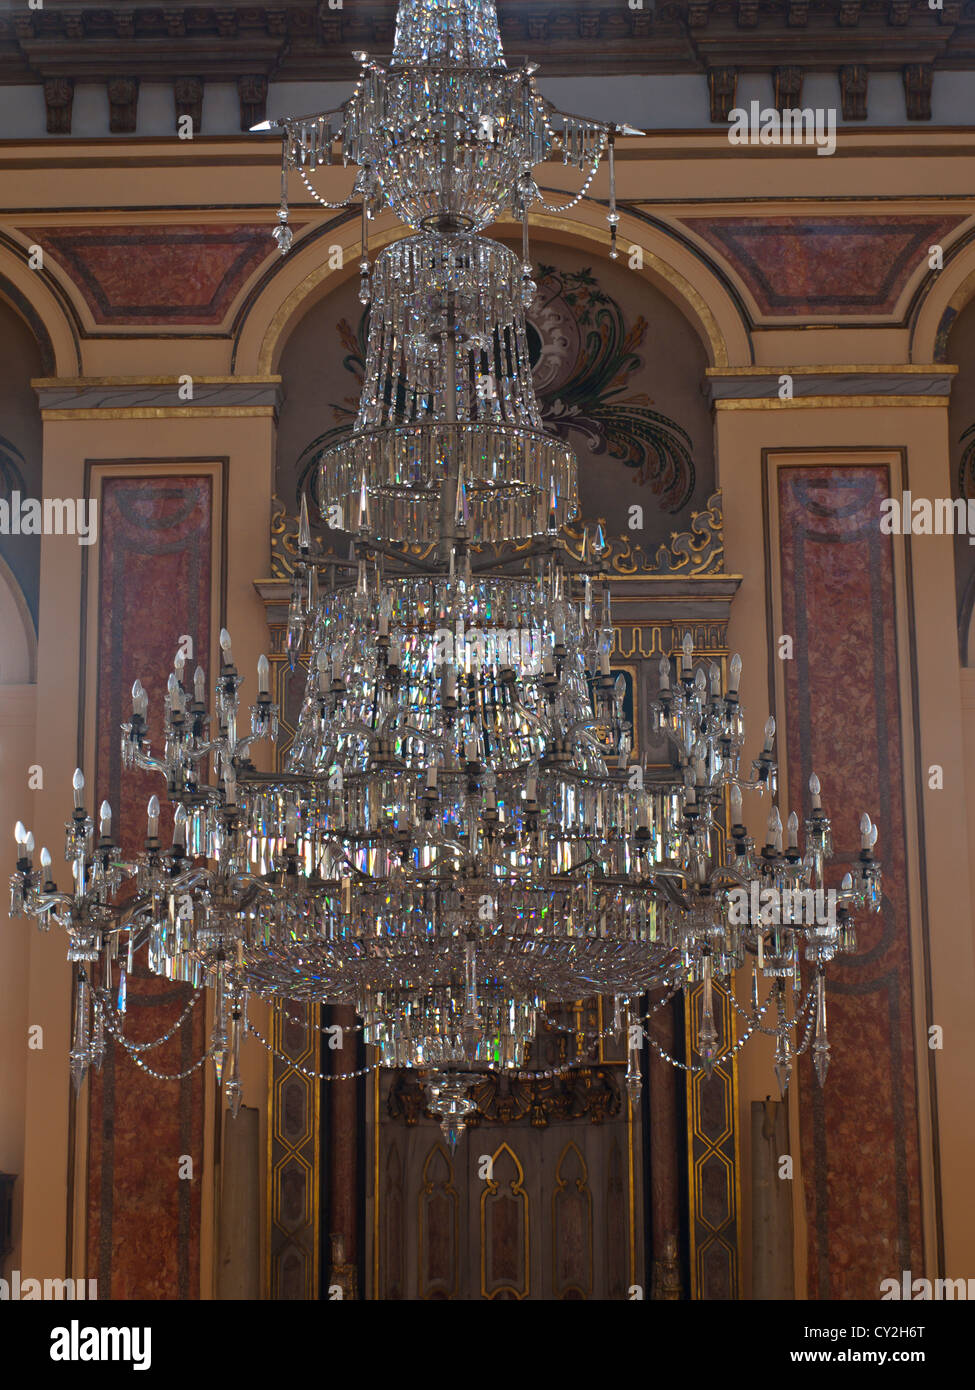 Dolmabache mosque has a large hanging crystal chandelier probably dolmabache mosque has a large hanging crystal chandelier probably bohemian or baccarat crystal like the palace next door aloadofball Choice Image